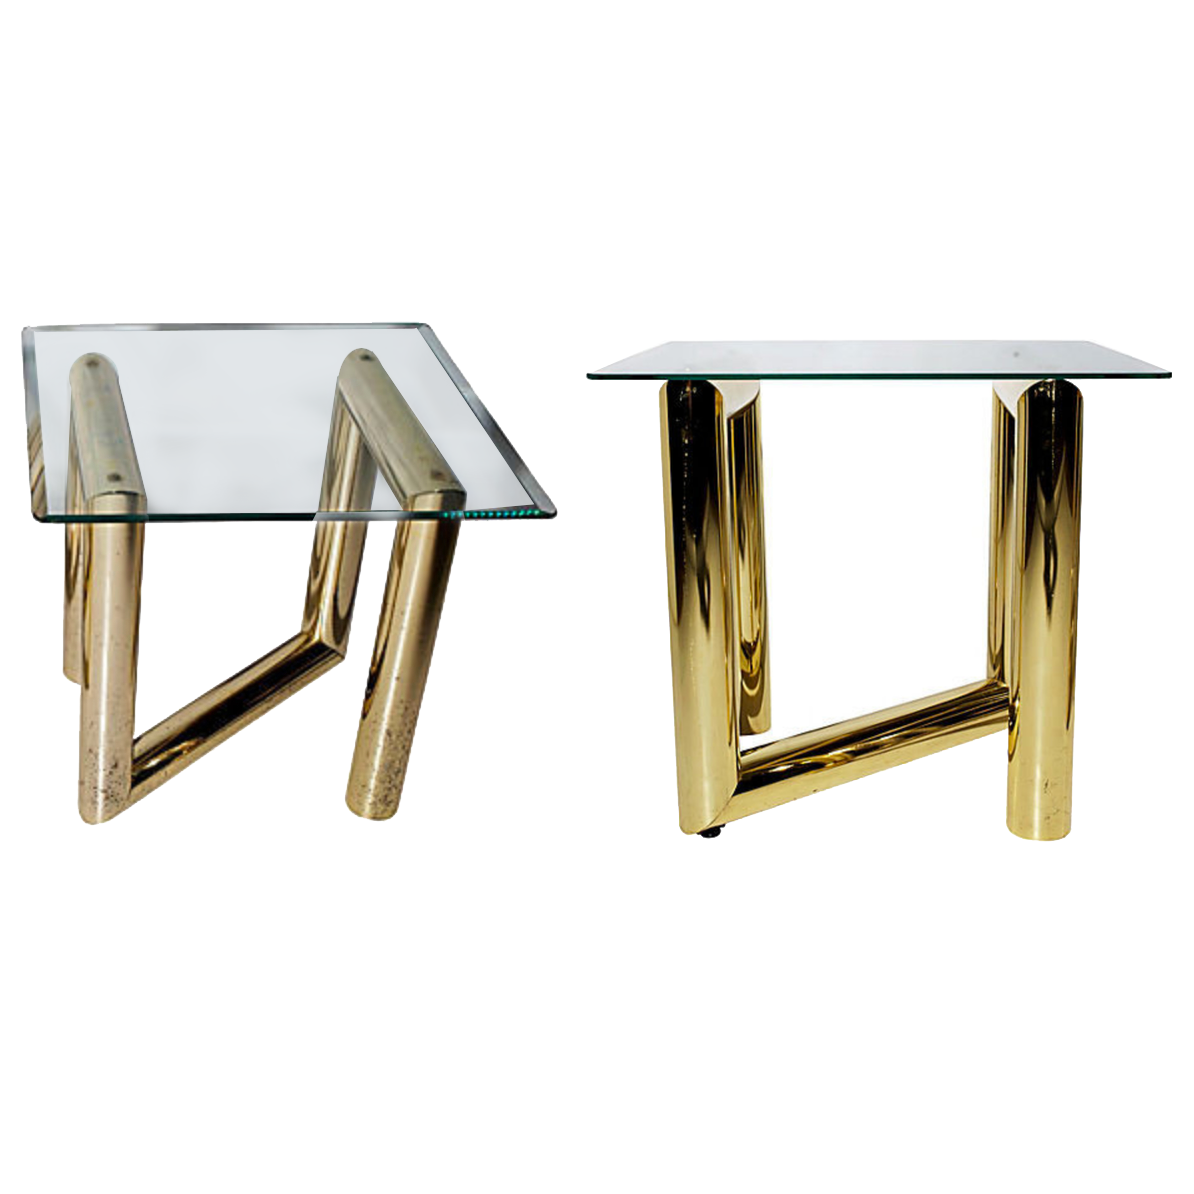 Karl springer z shaped side tables a pair chairish for Prem table 99 00